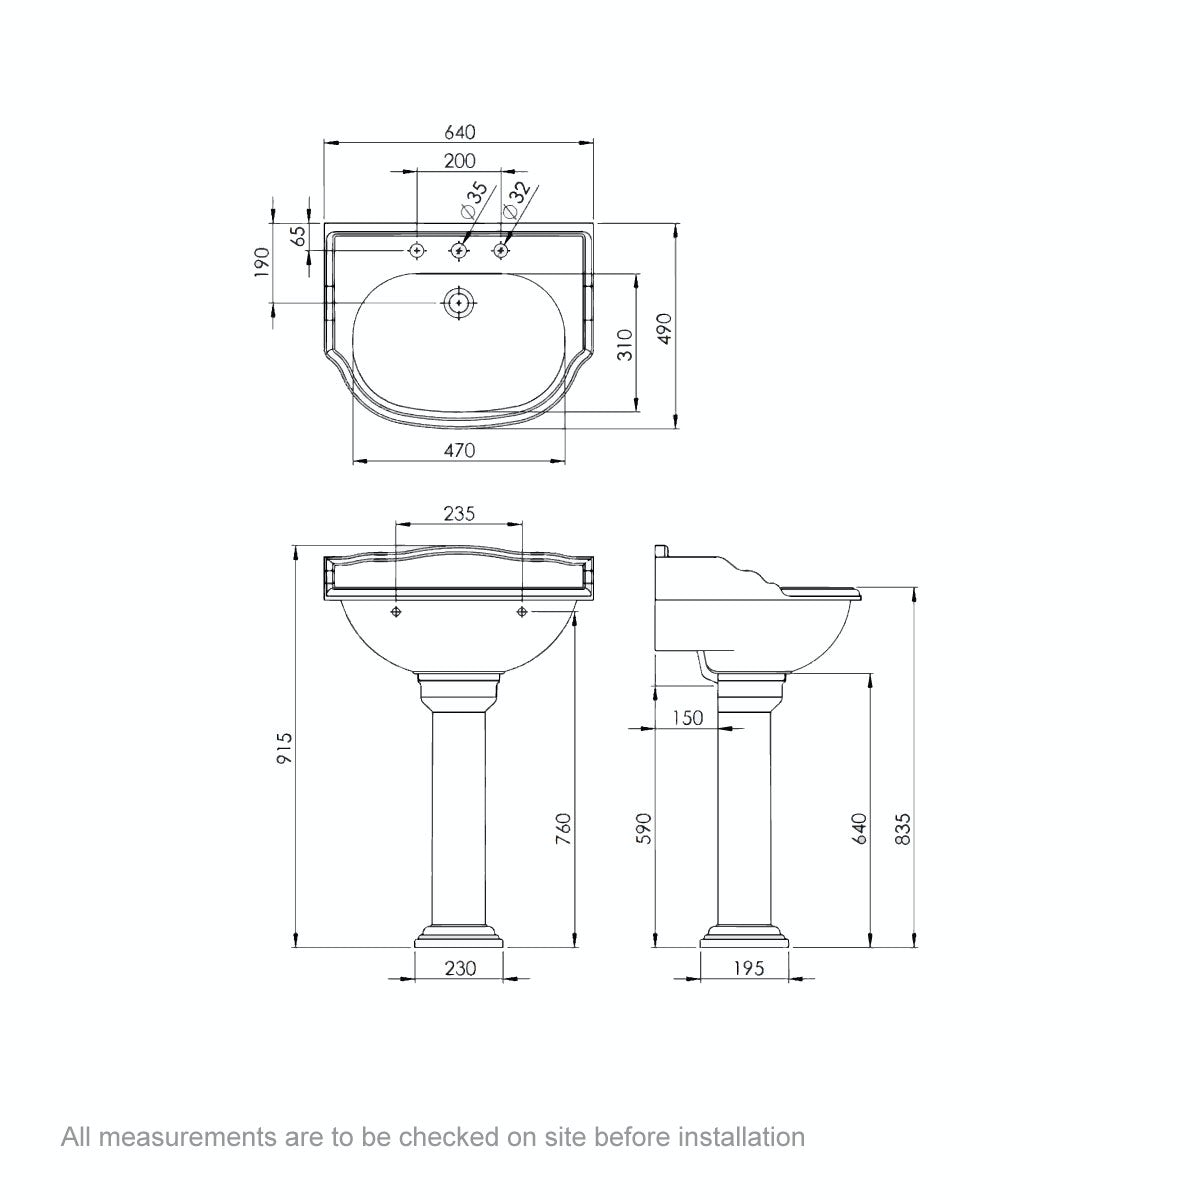 Dimensions for Belle de Louvain Charlet low level toilet and full pedestal suite with chrome fittings and taps